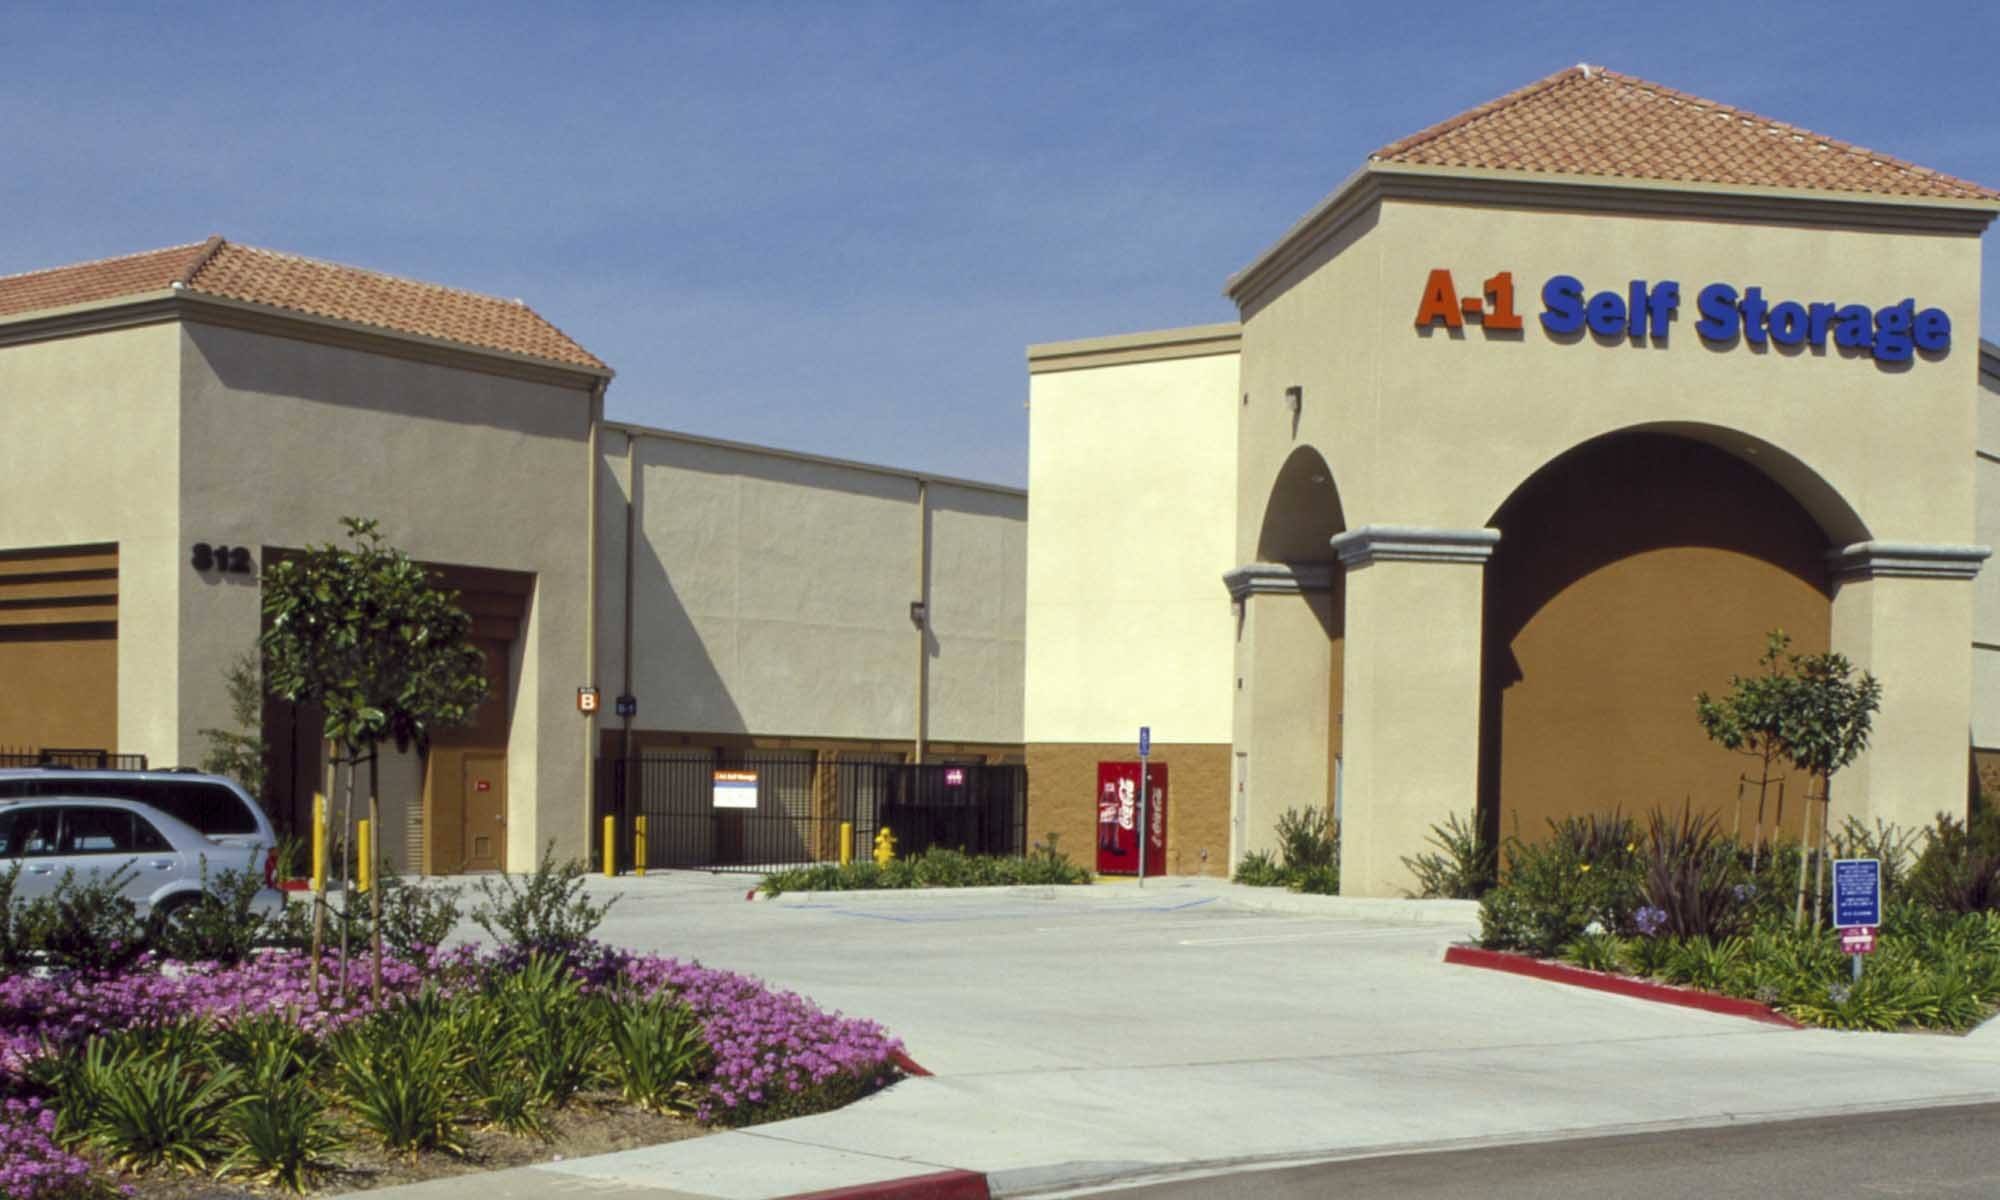 Self storage in Chula Vista CA